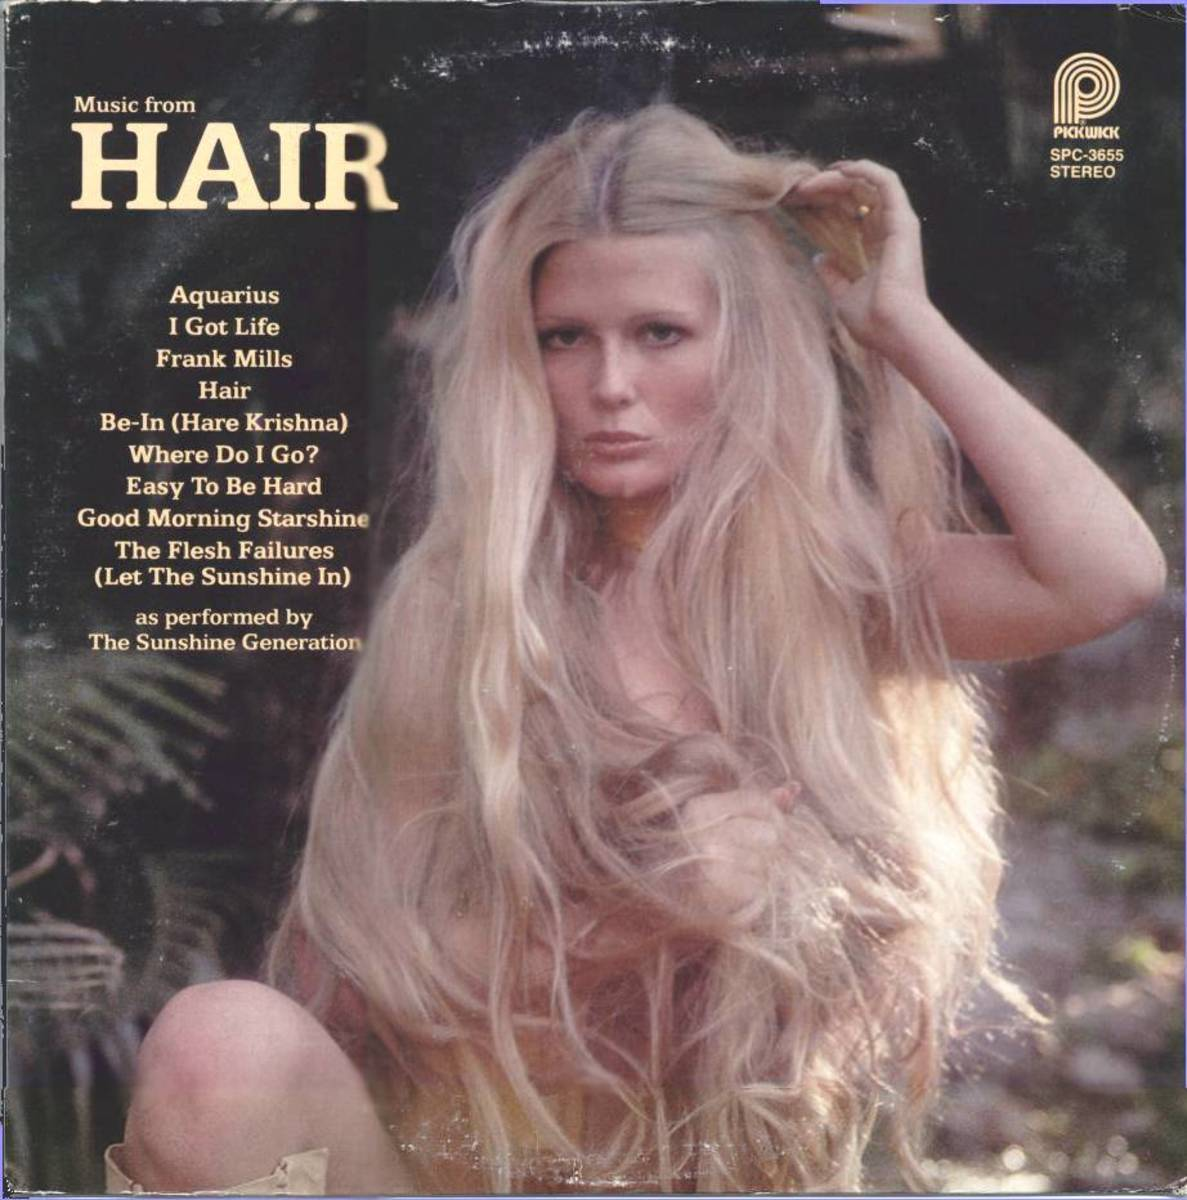 Hair the Album Cover - Bad Hair Day?